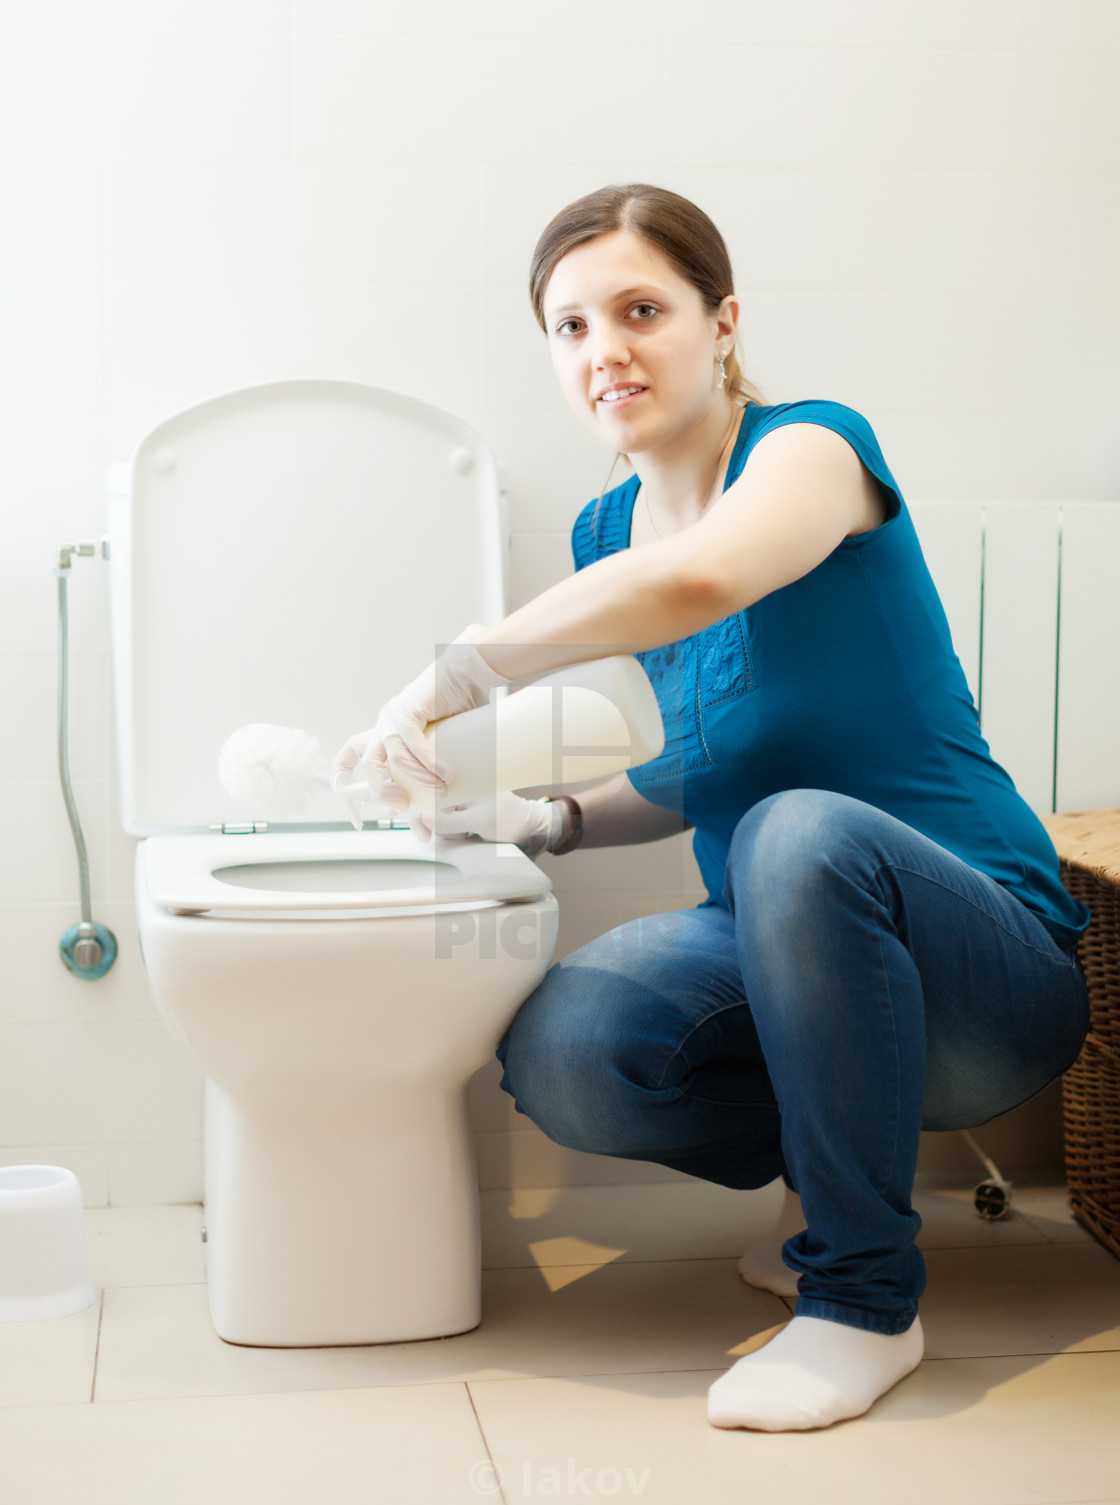 Magnificent Woman Cleaning Toilet Bowl With Brush And Cleaner License Pabps2019 Chair Design Images Pabps2019Com